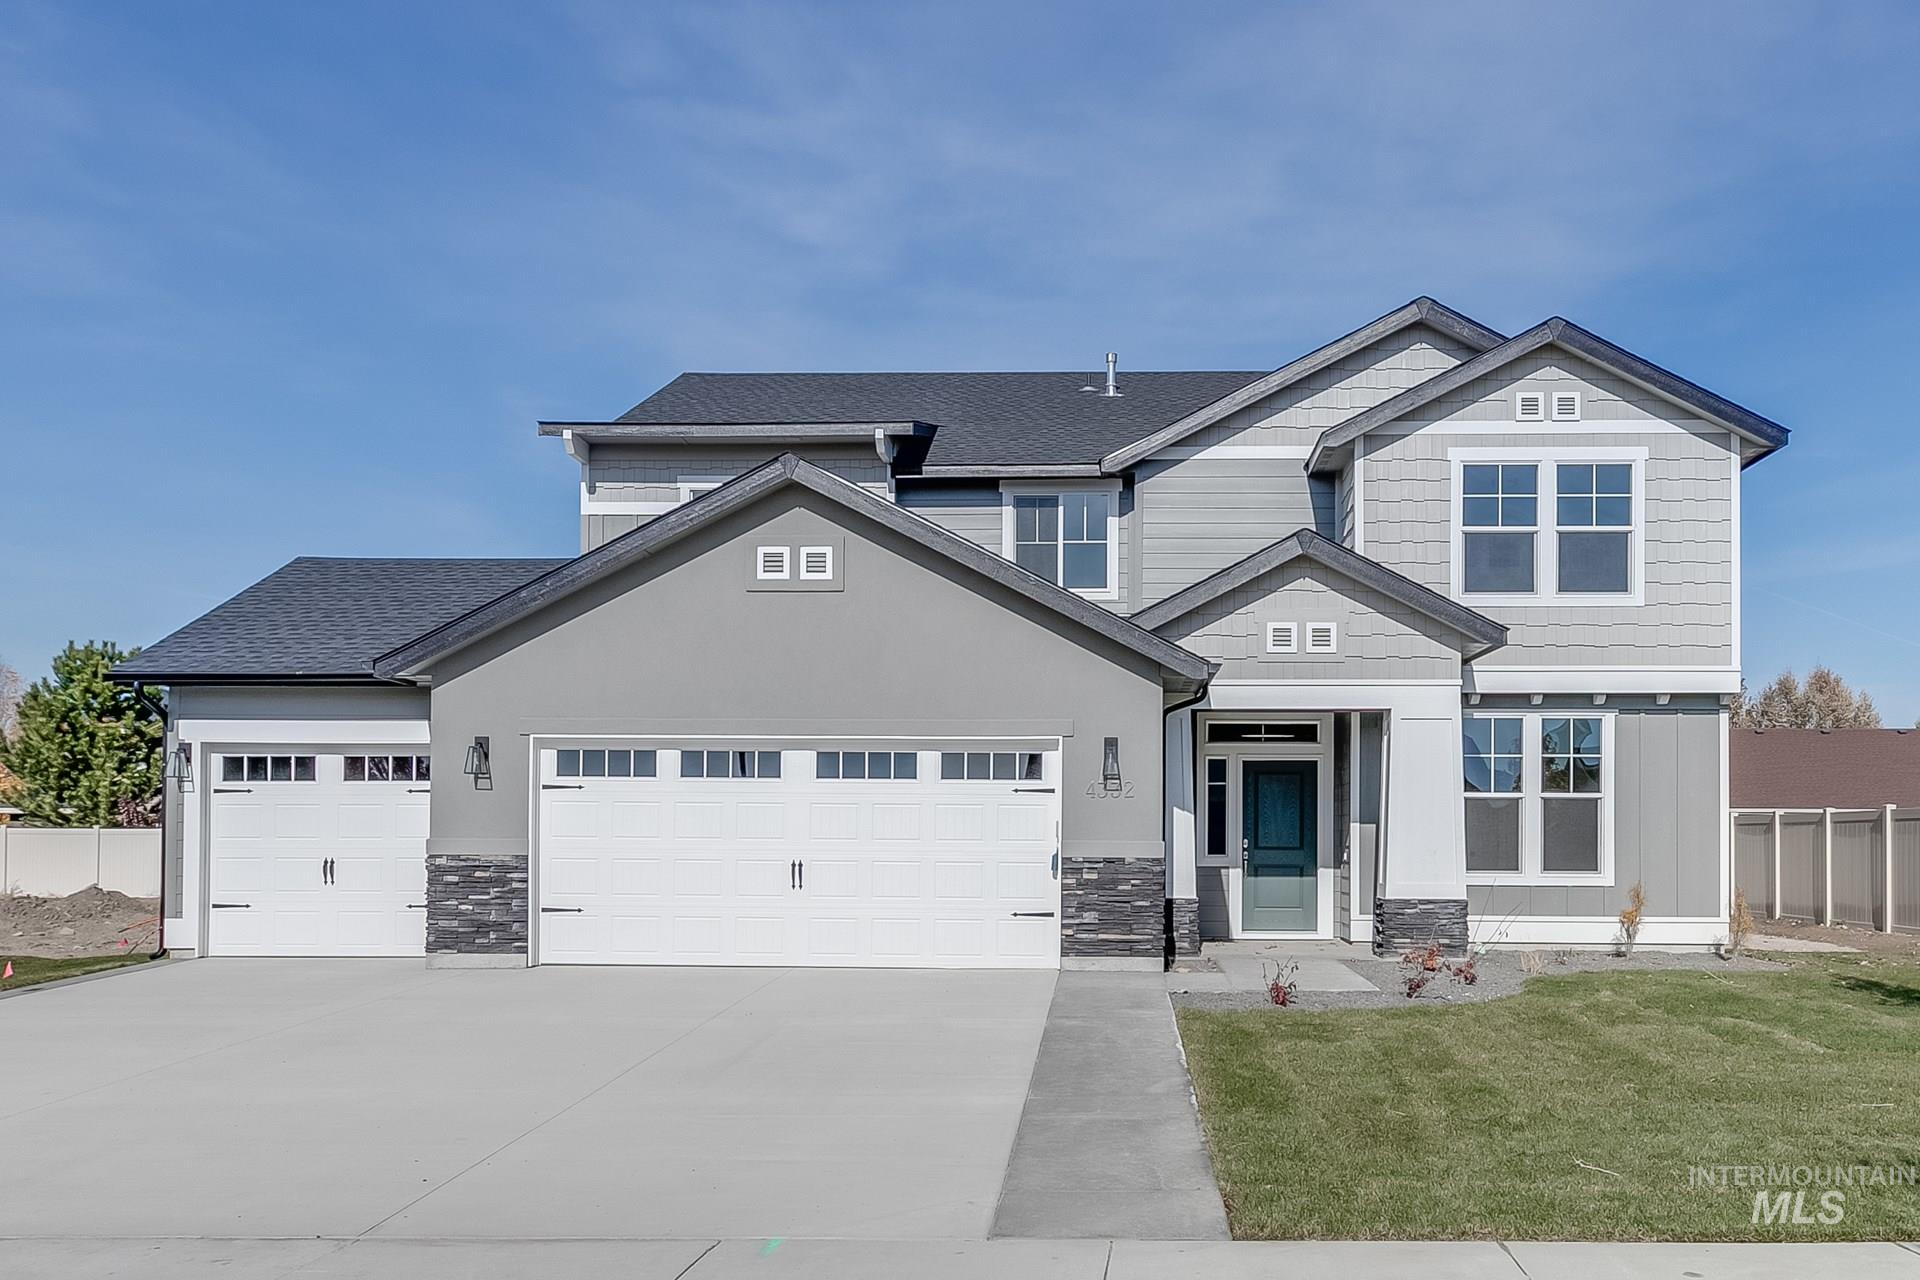 13696 S Cello Ave Property Photo - Nampa, ID real estate listing